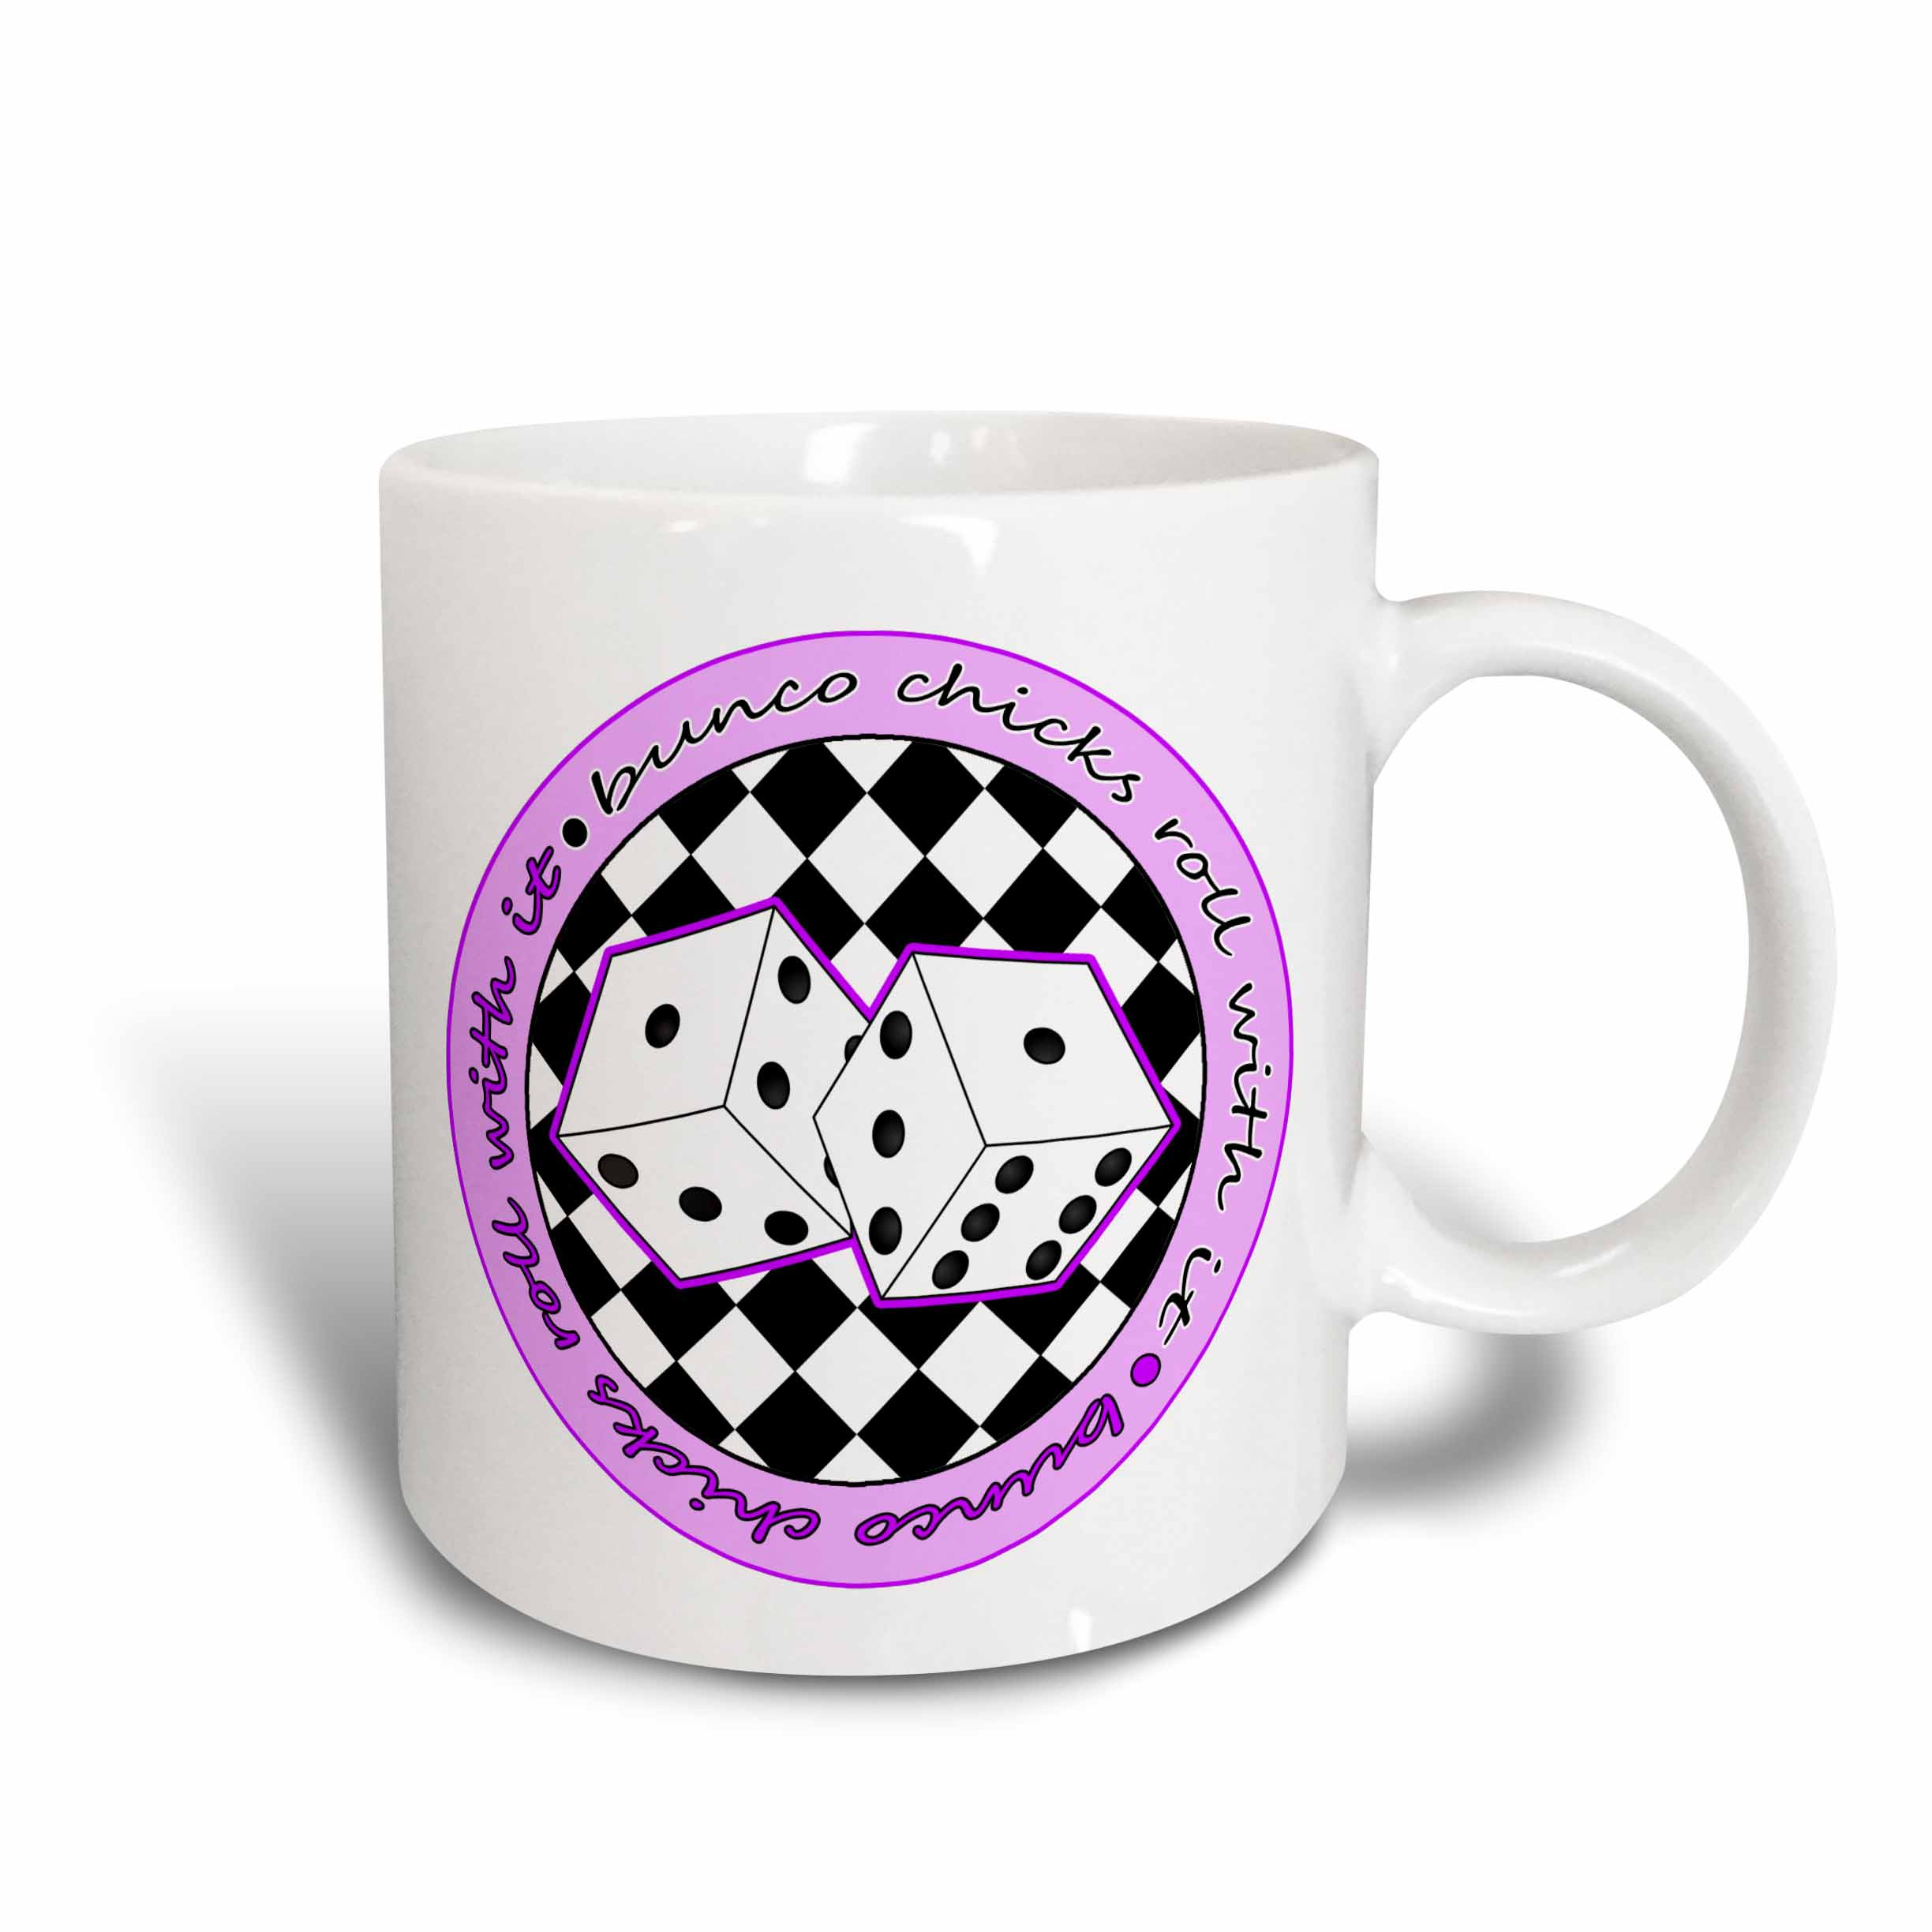 3dRose Bunco Chicks Roll With It Purple and White, Ceramic Mug, 11-ounce